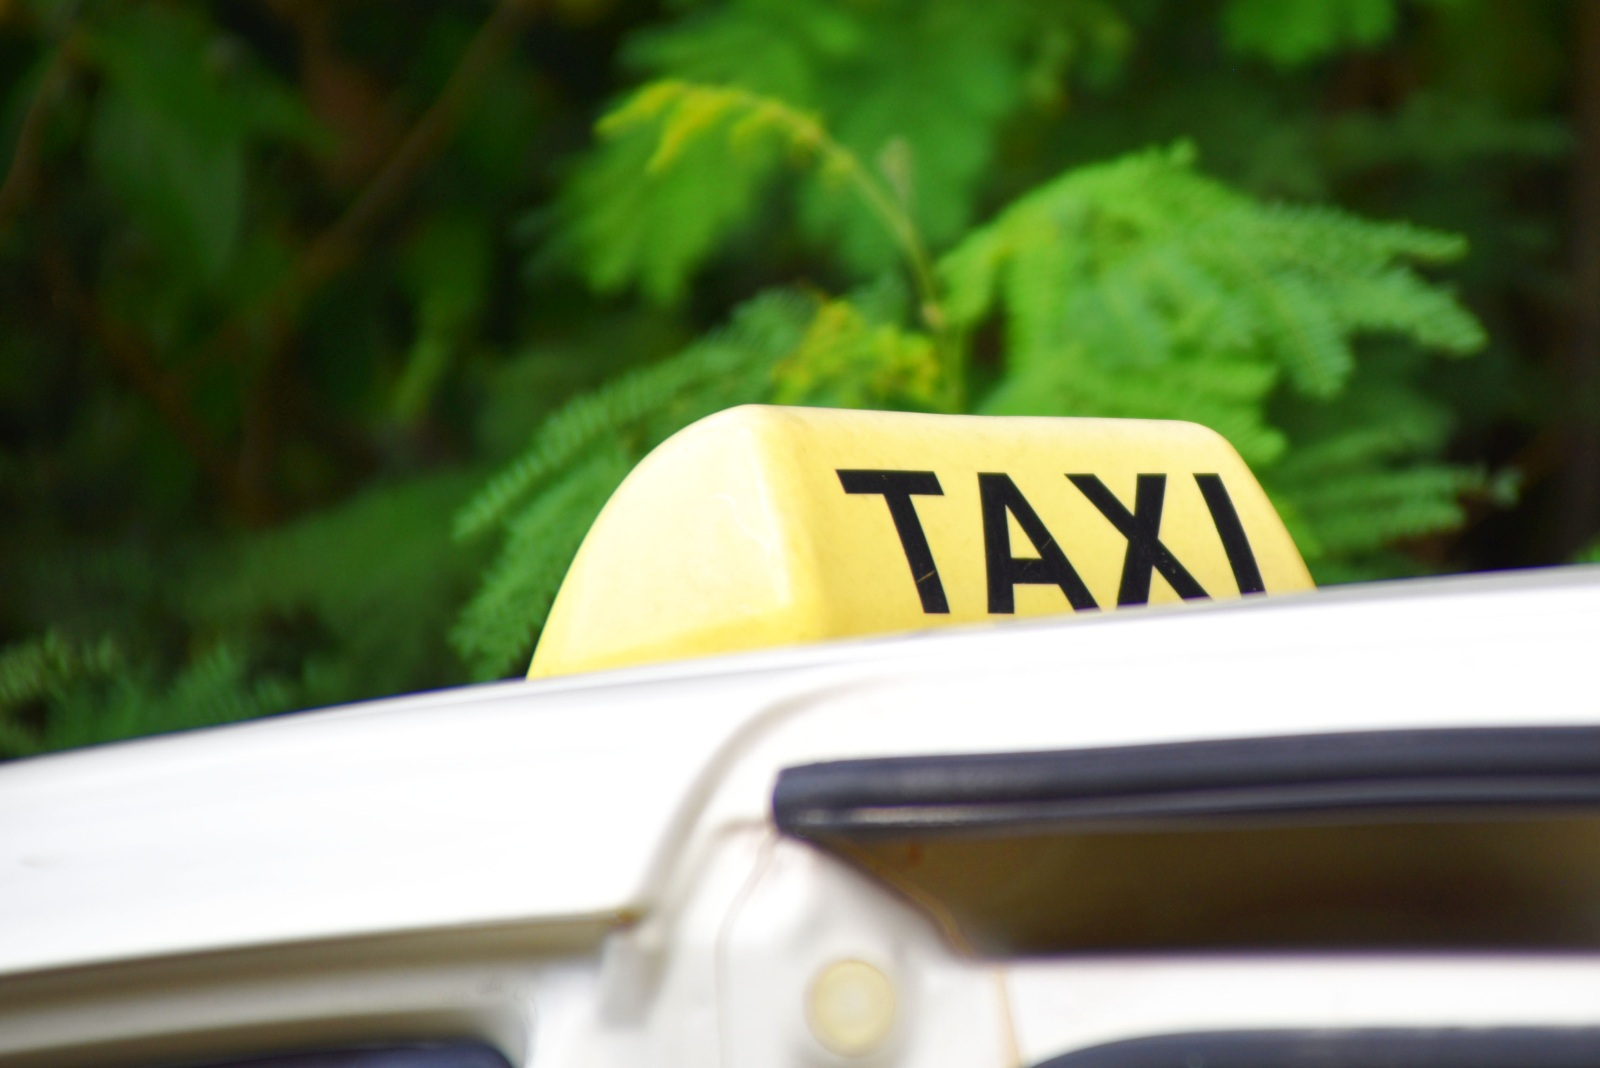 How Much Does a Tonga Airport Taxi Cost?